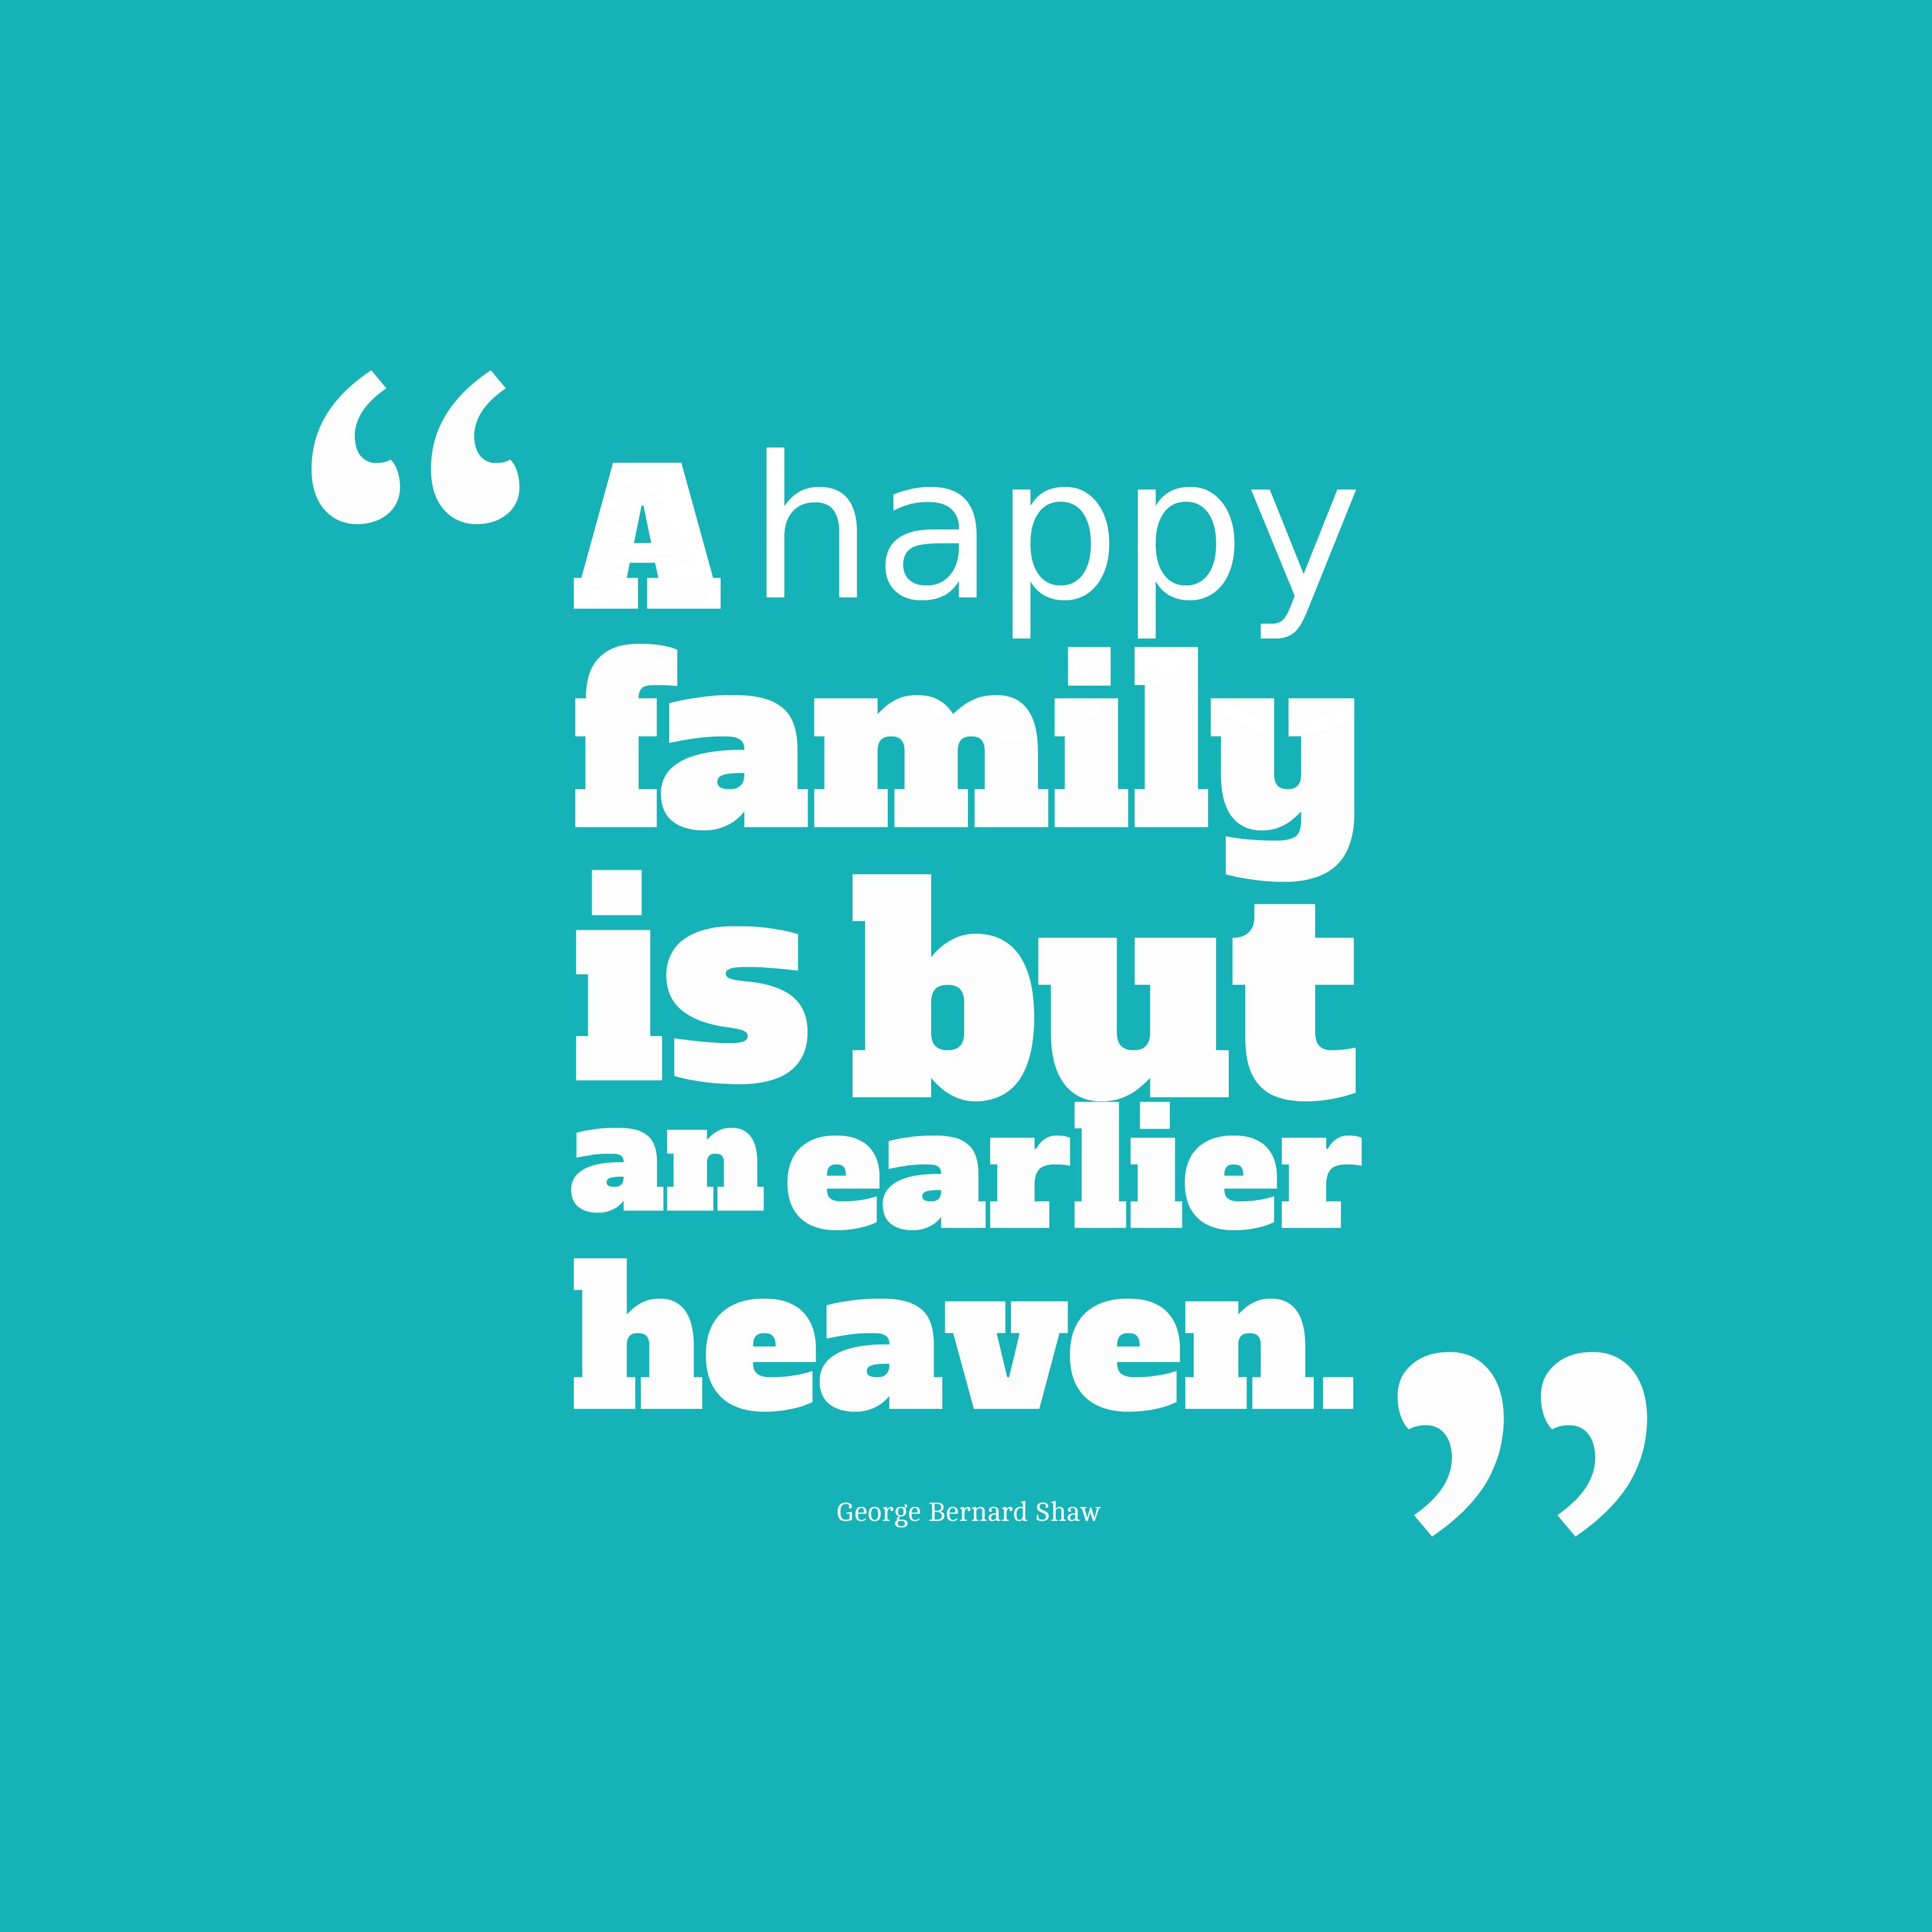 ... or publish quotes picture from George Bernard Shaw quote about family